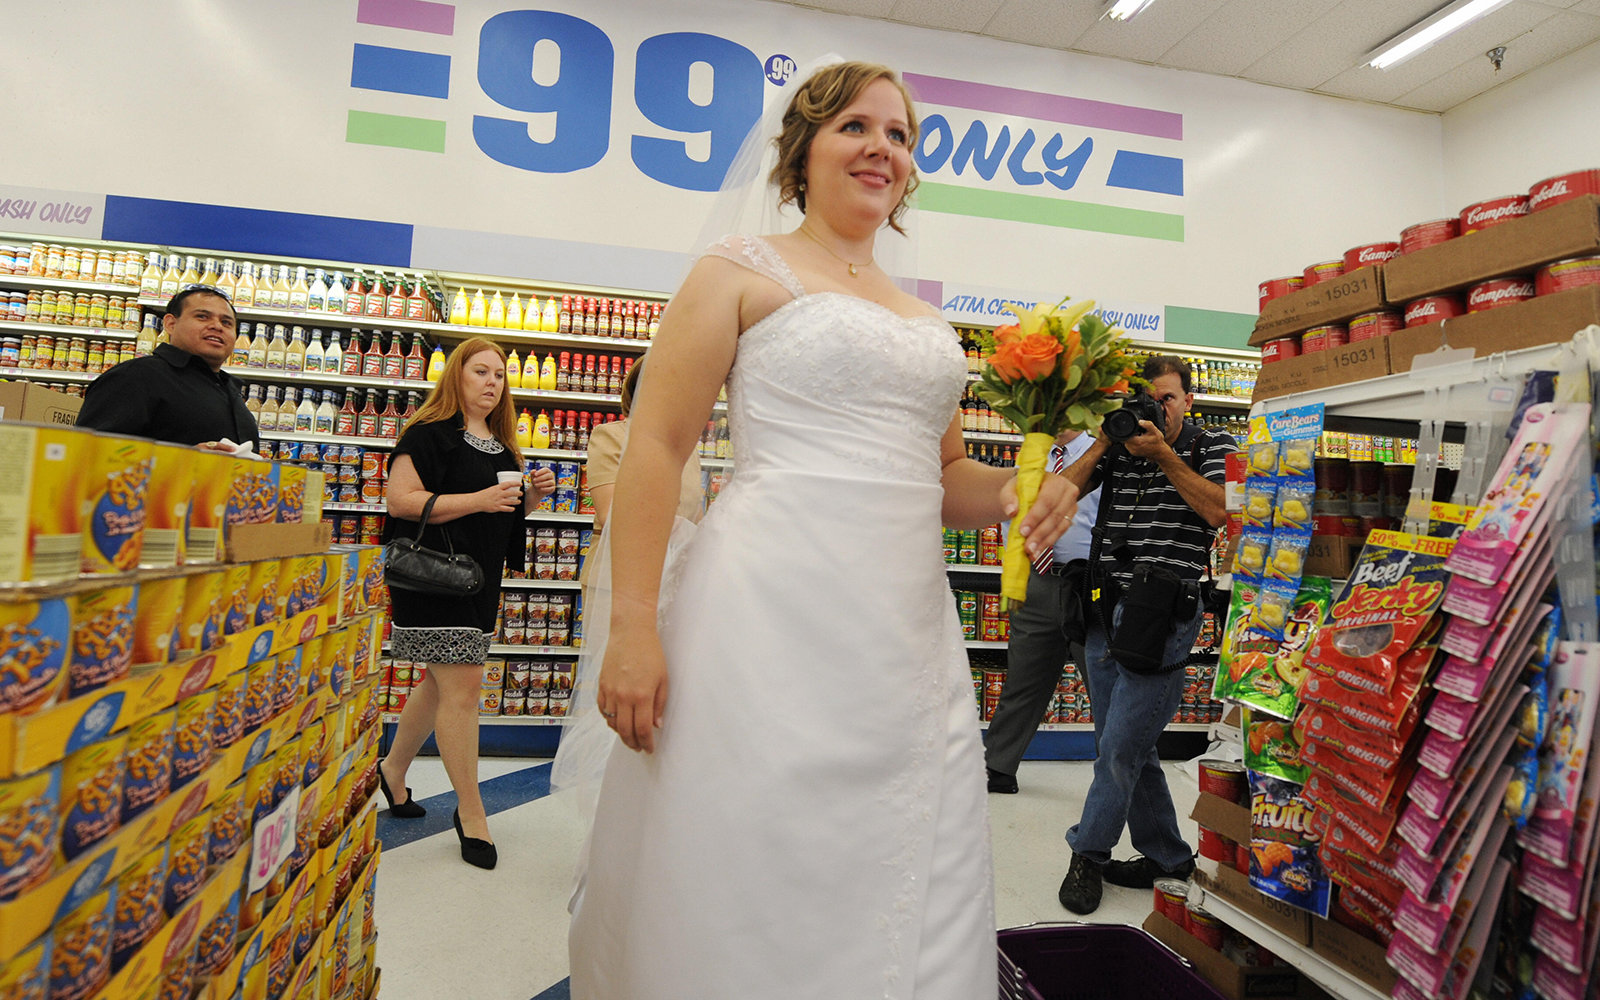 wedding ceremony at the 99 cent store in Los Angeles, CA